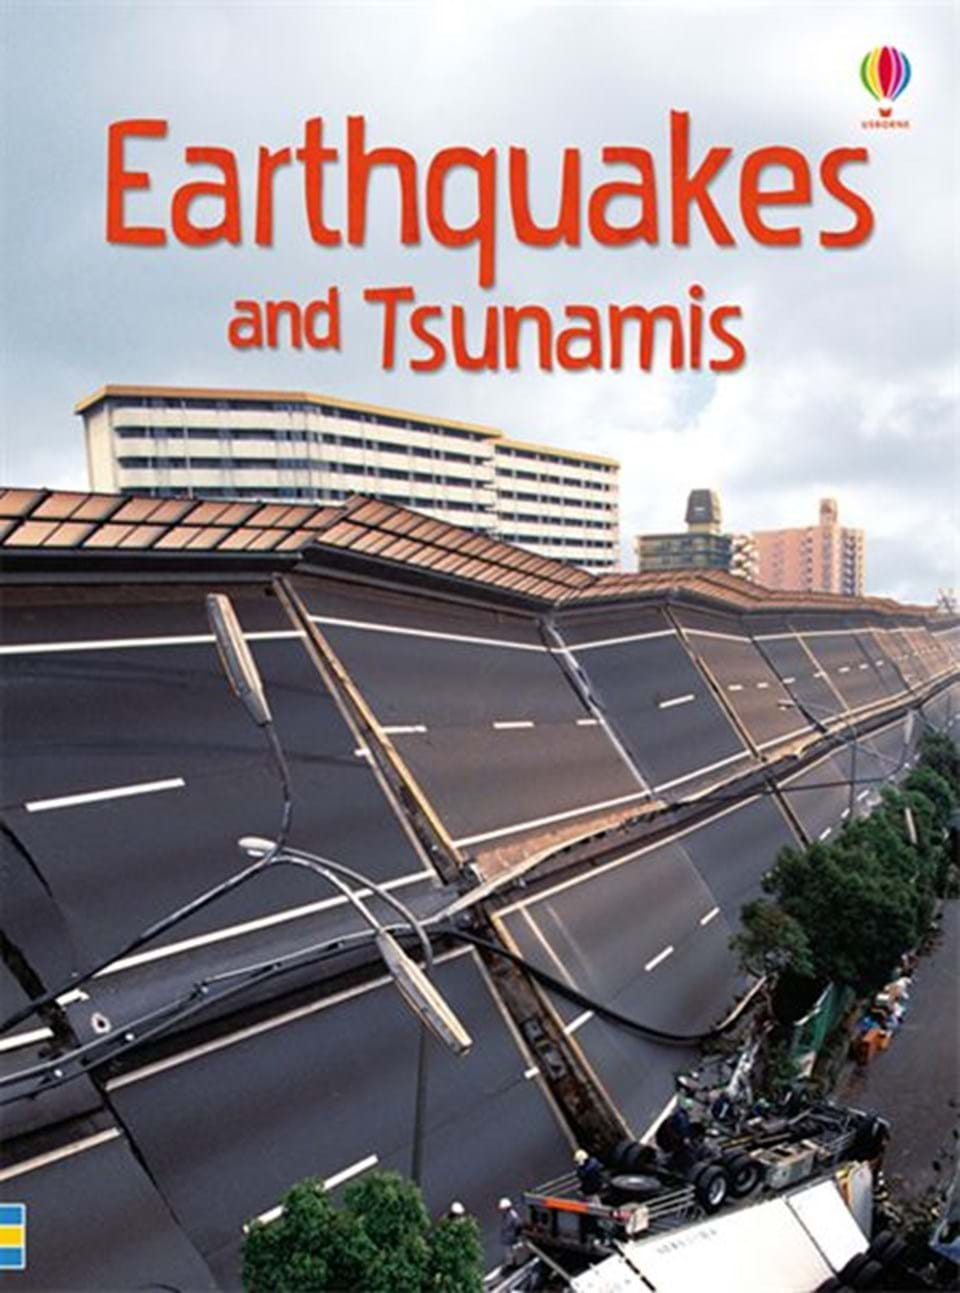 Worksheet Tsunamis Earthquakes earthquakes and at usborne books home organisers tsunamis